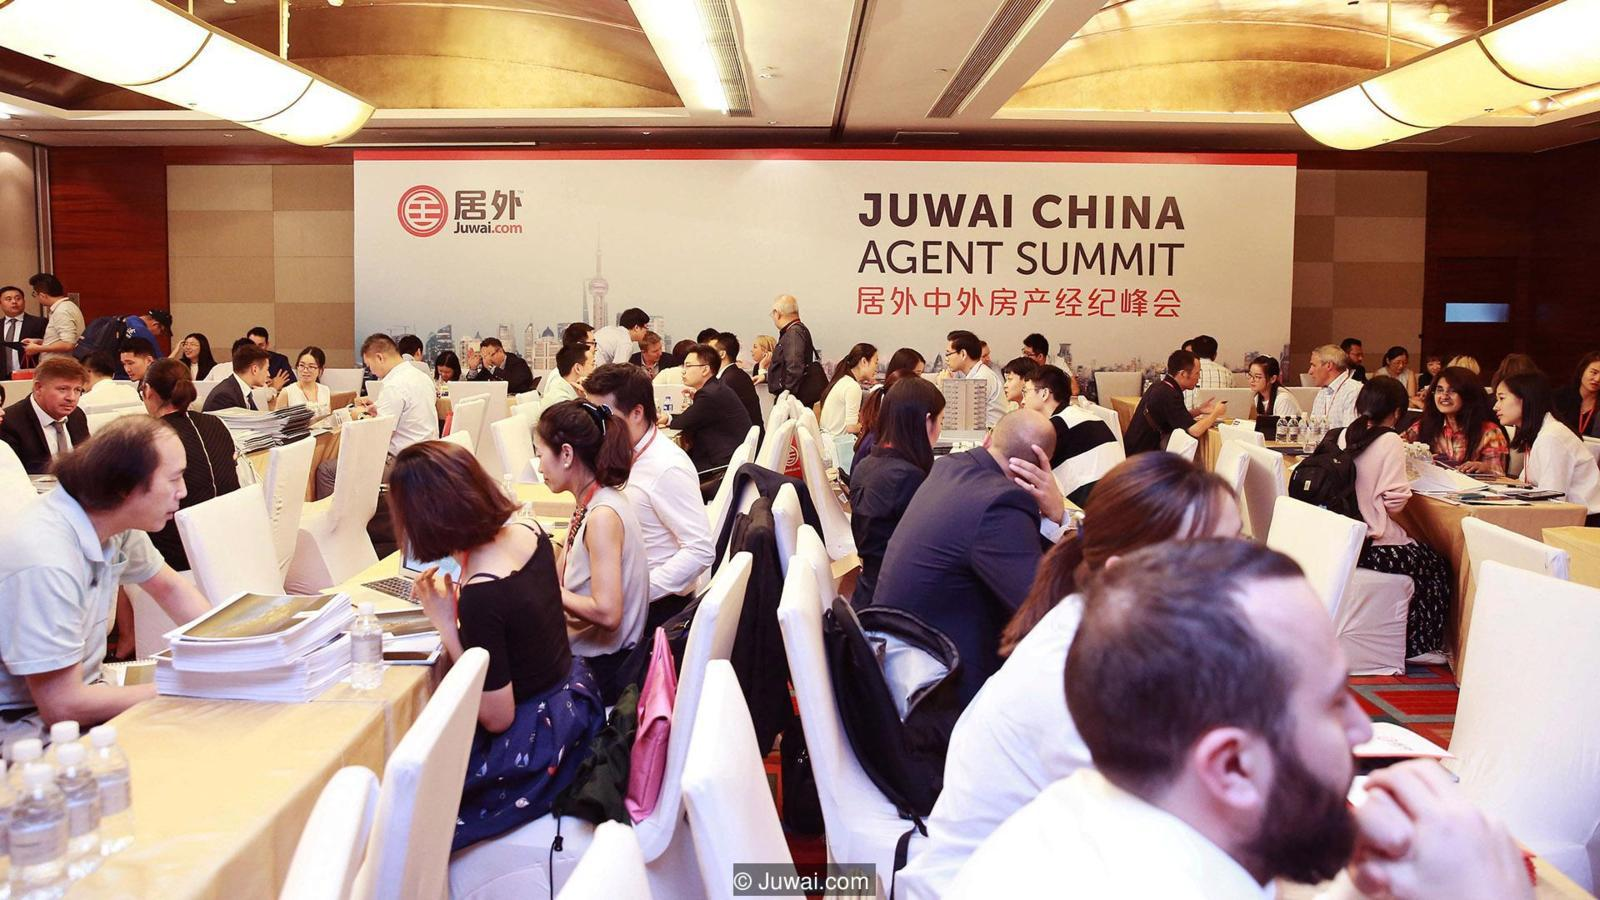 Chinese and international agents network at a Juwai.com Agent Summit in Shanghai